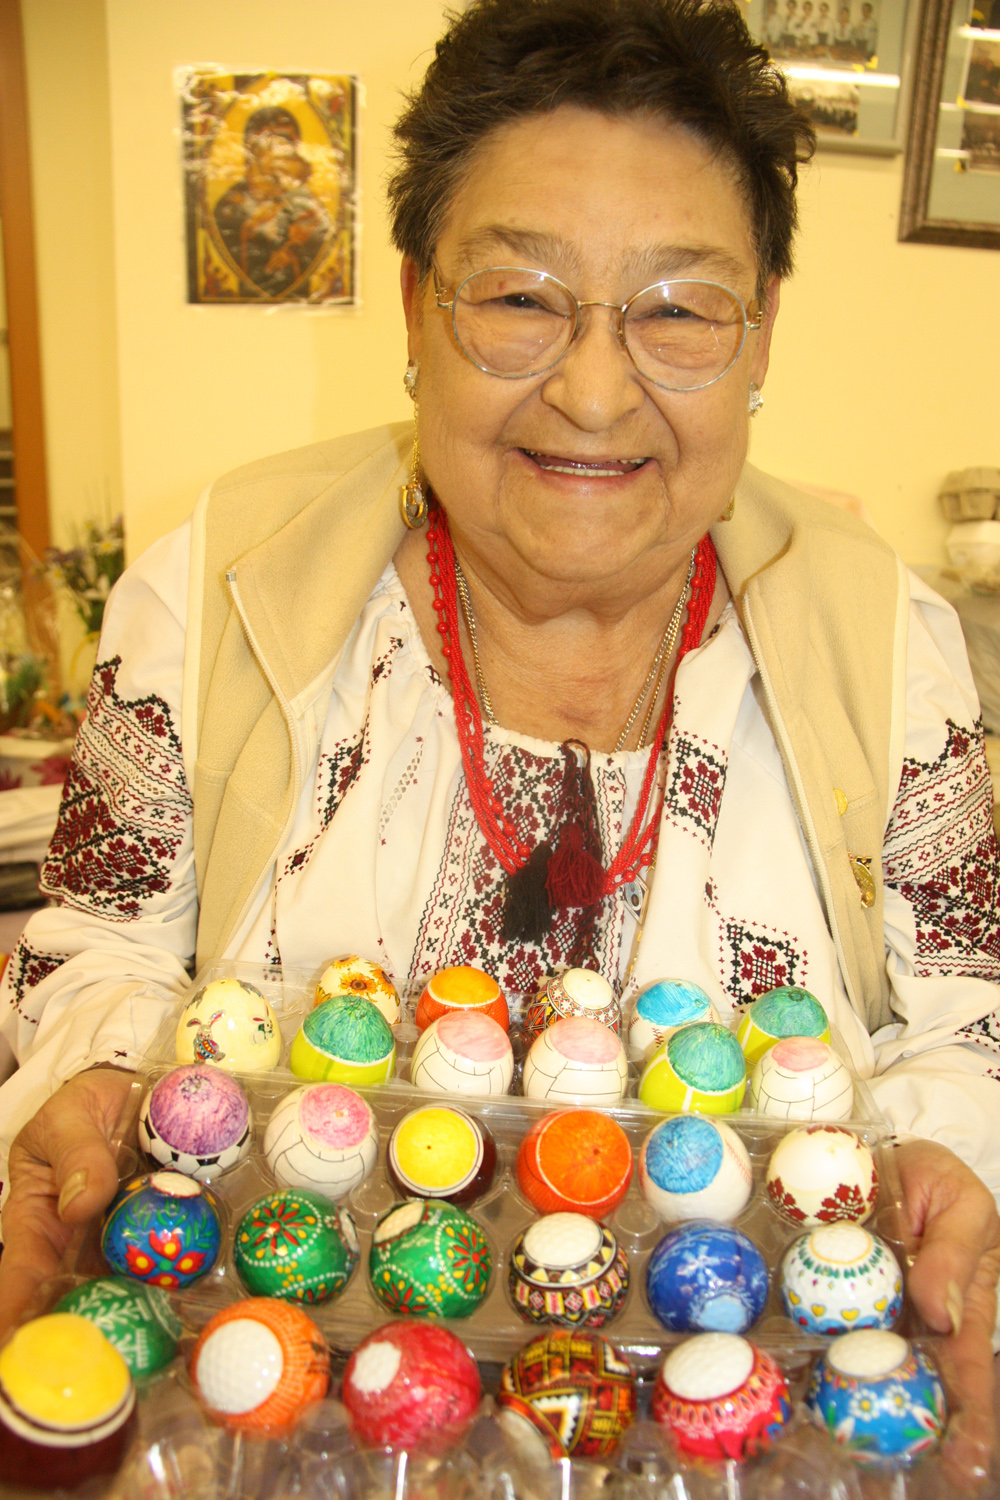 Artisan and crafter Rose-Marie Prokopchuk displays her unique Easter eggs on Sunday at St. George's Ukrainian Catholic Church Besides her traditional pysanky decorated eggs Prokopchuk paints her eggs to look like sports balls. Teresa MALLAM/Free Press